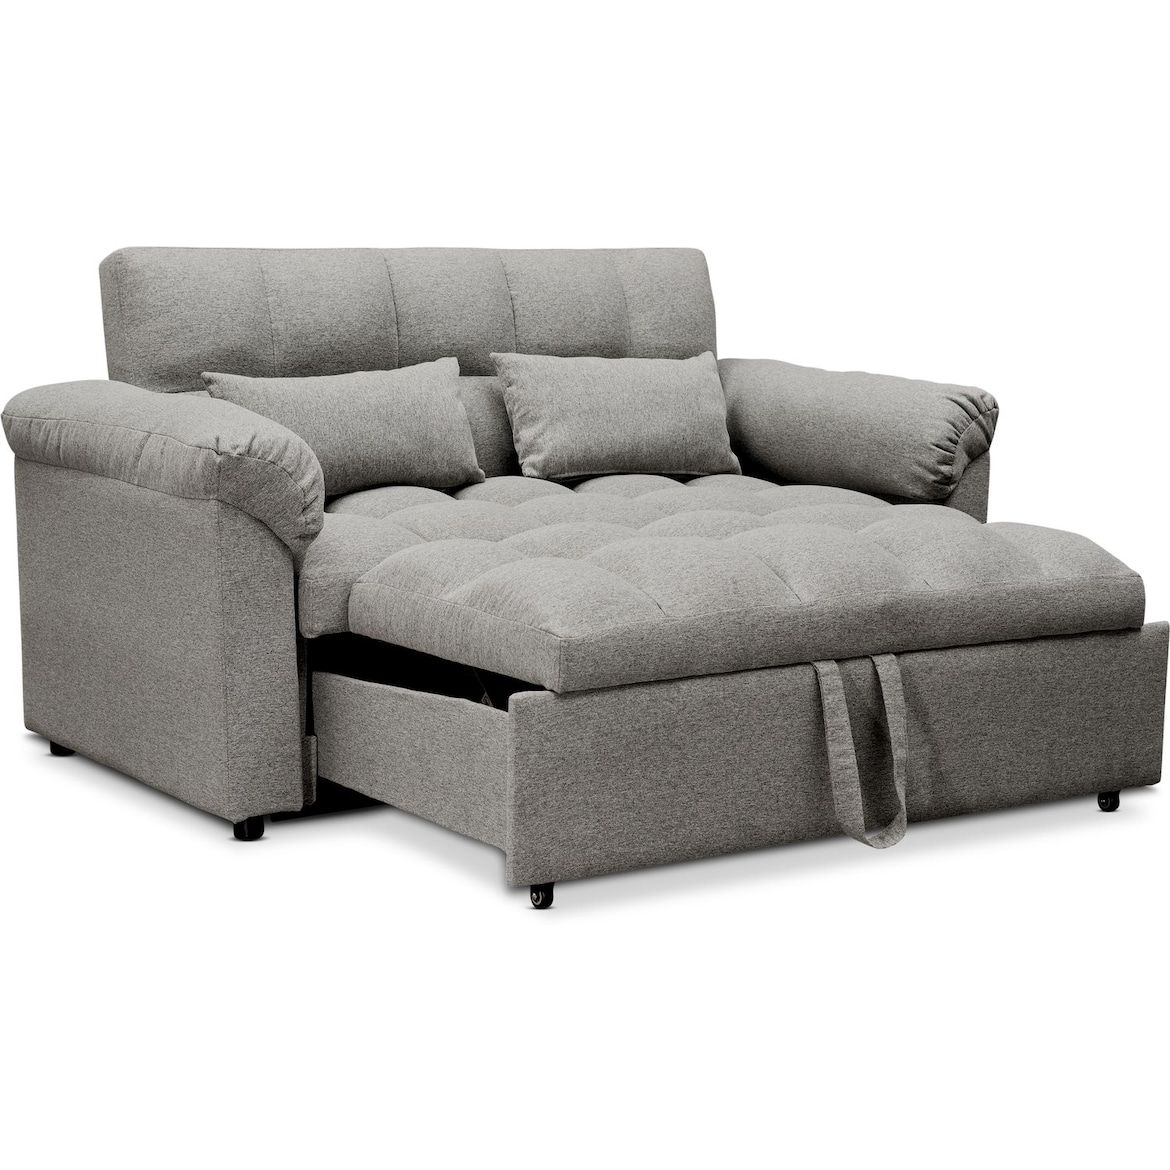 Mariel Media Sleeper Value City Furniture And Mattresses In 2020 Comfy Sofa Bed Sofa Bed With Storage Sectional Sofa Couch